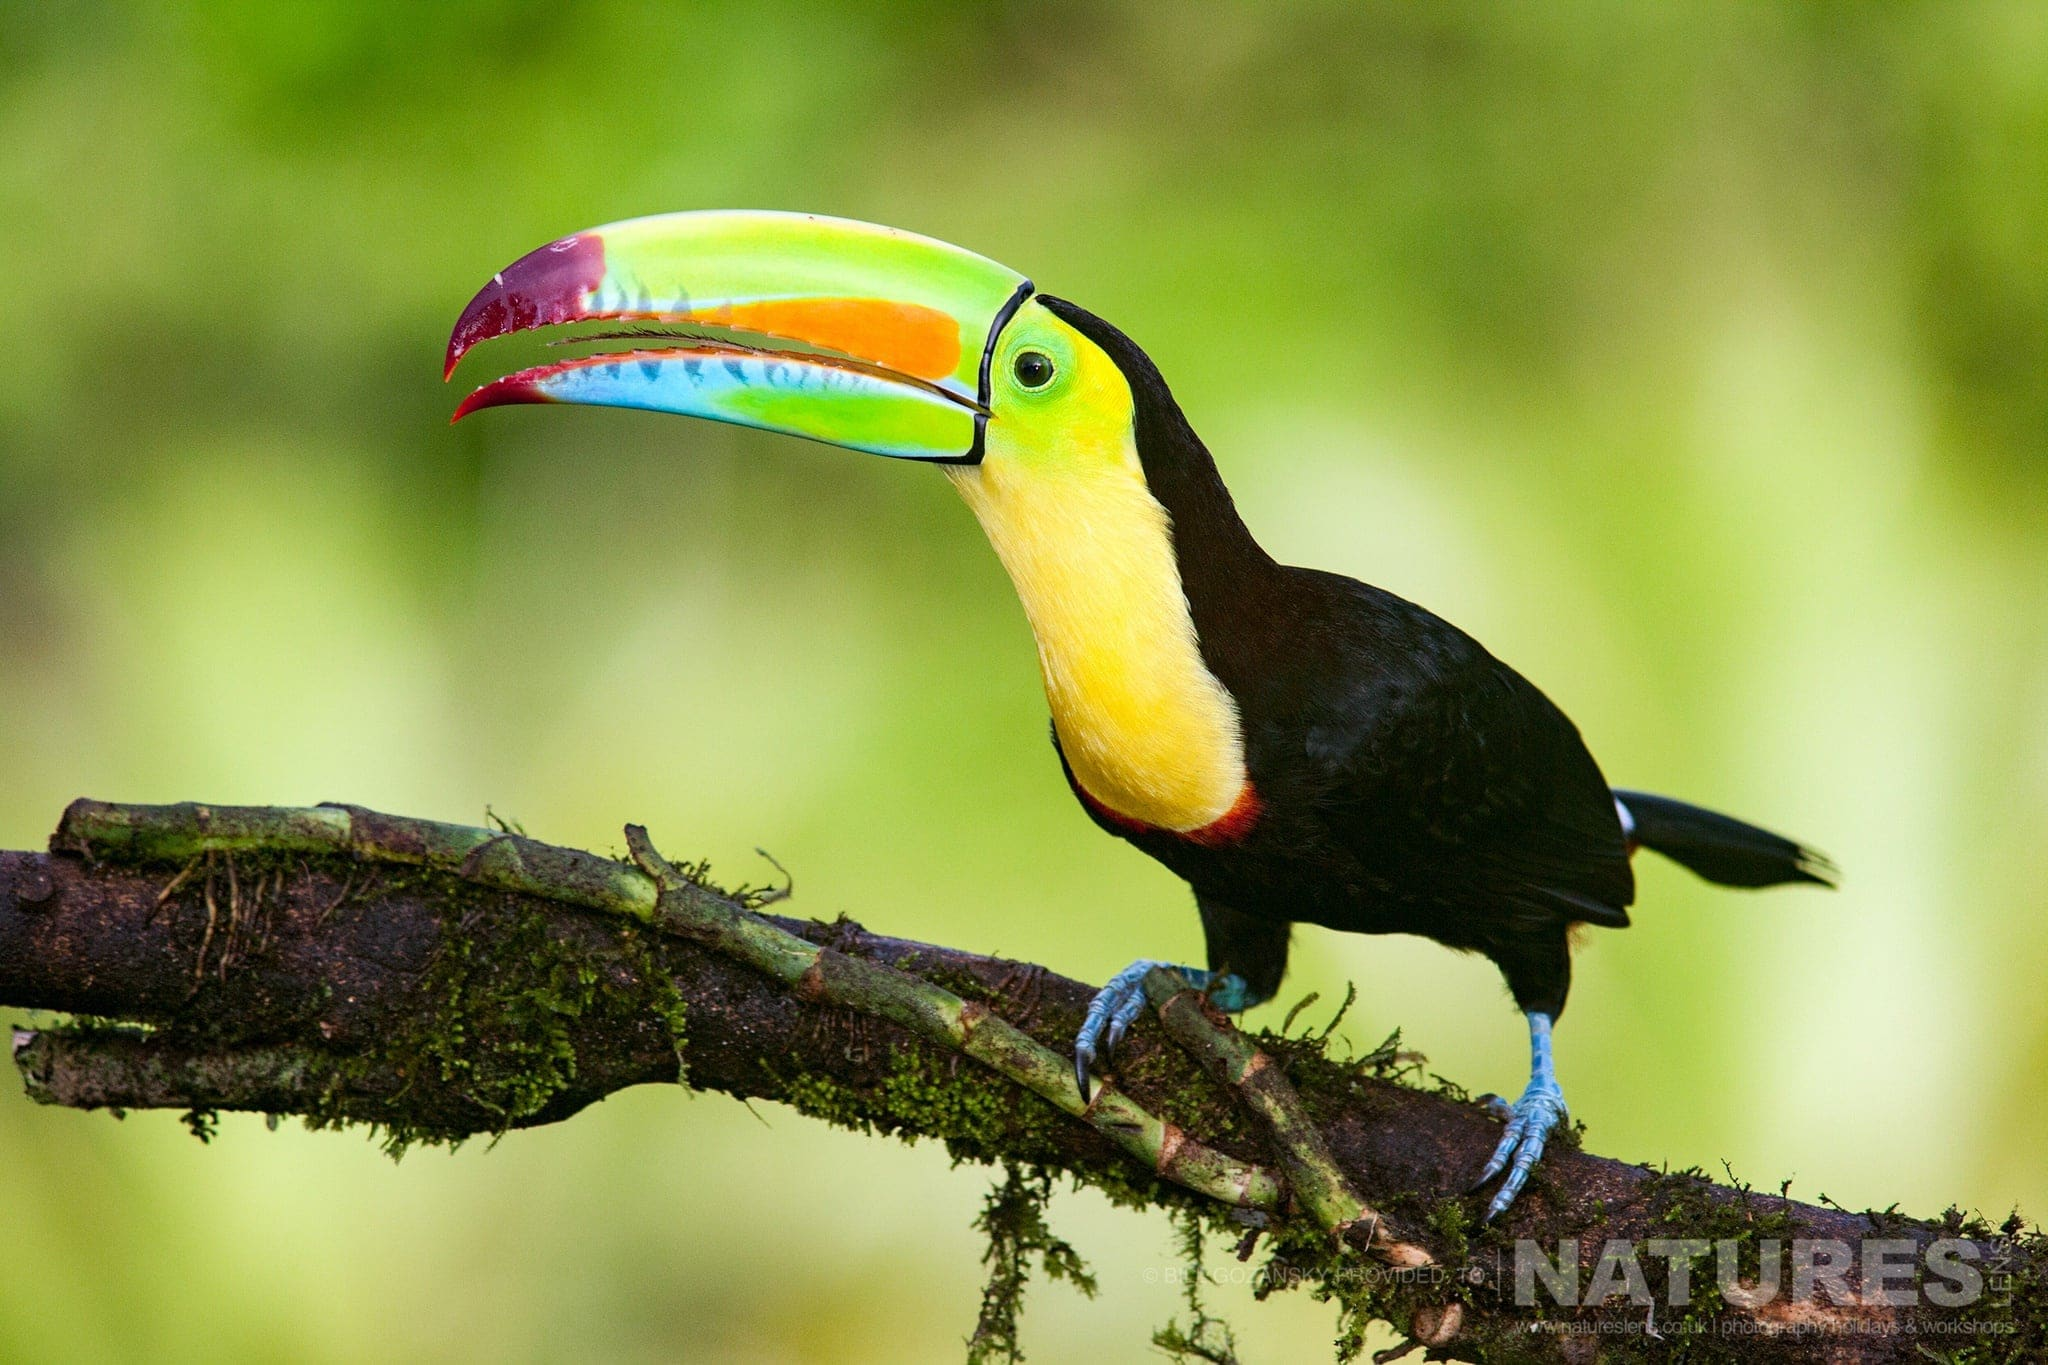 A keel-billed toucan photographed at one of the locations that feature on the NaturesLens Wildlife of Costa Rica Photography Holiday